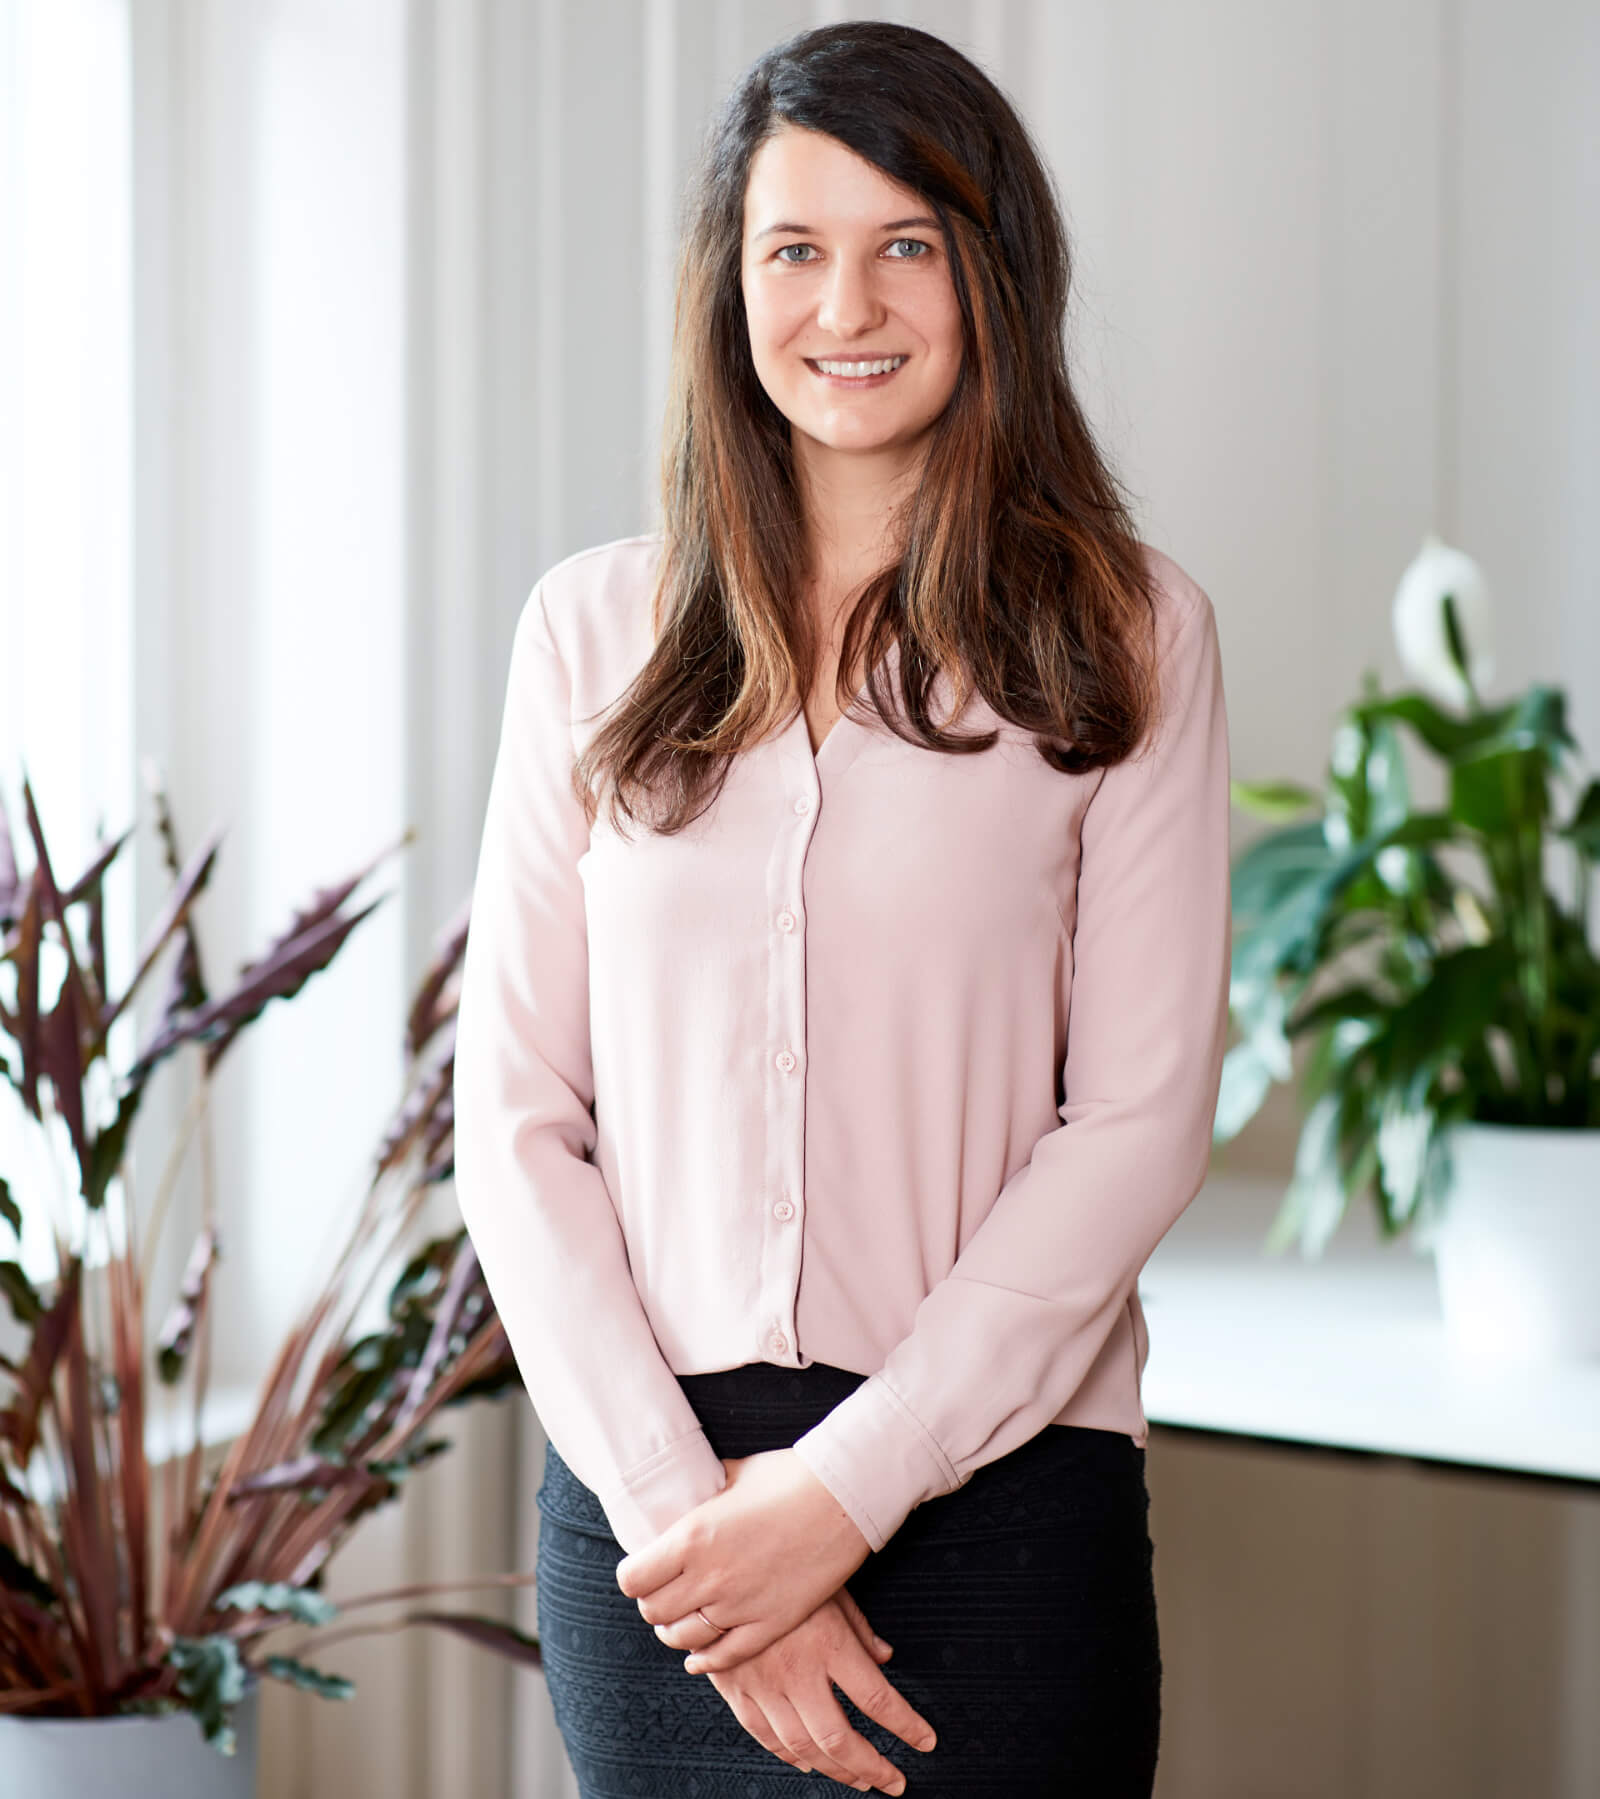 portrait-bettina-enser-head-of-marketing-team-eturnity